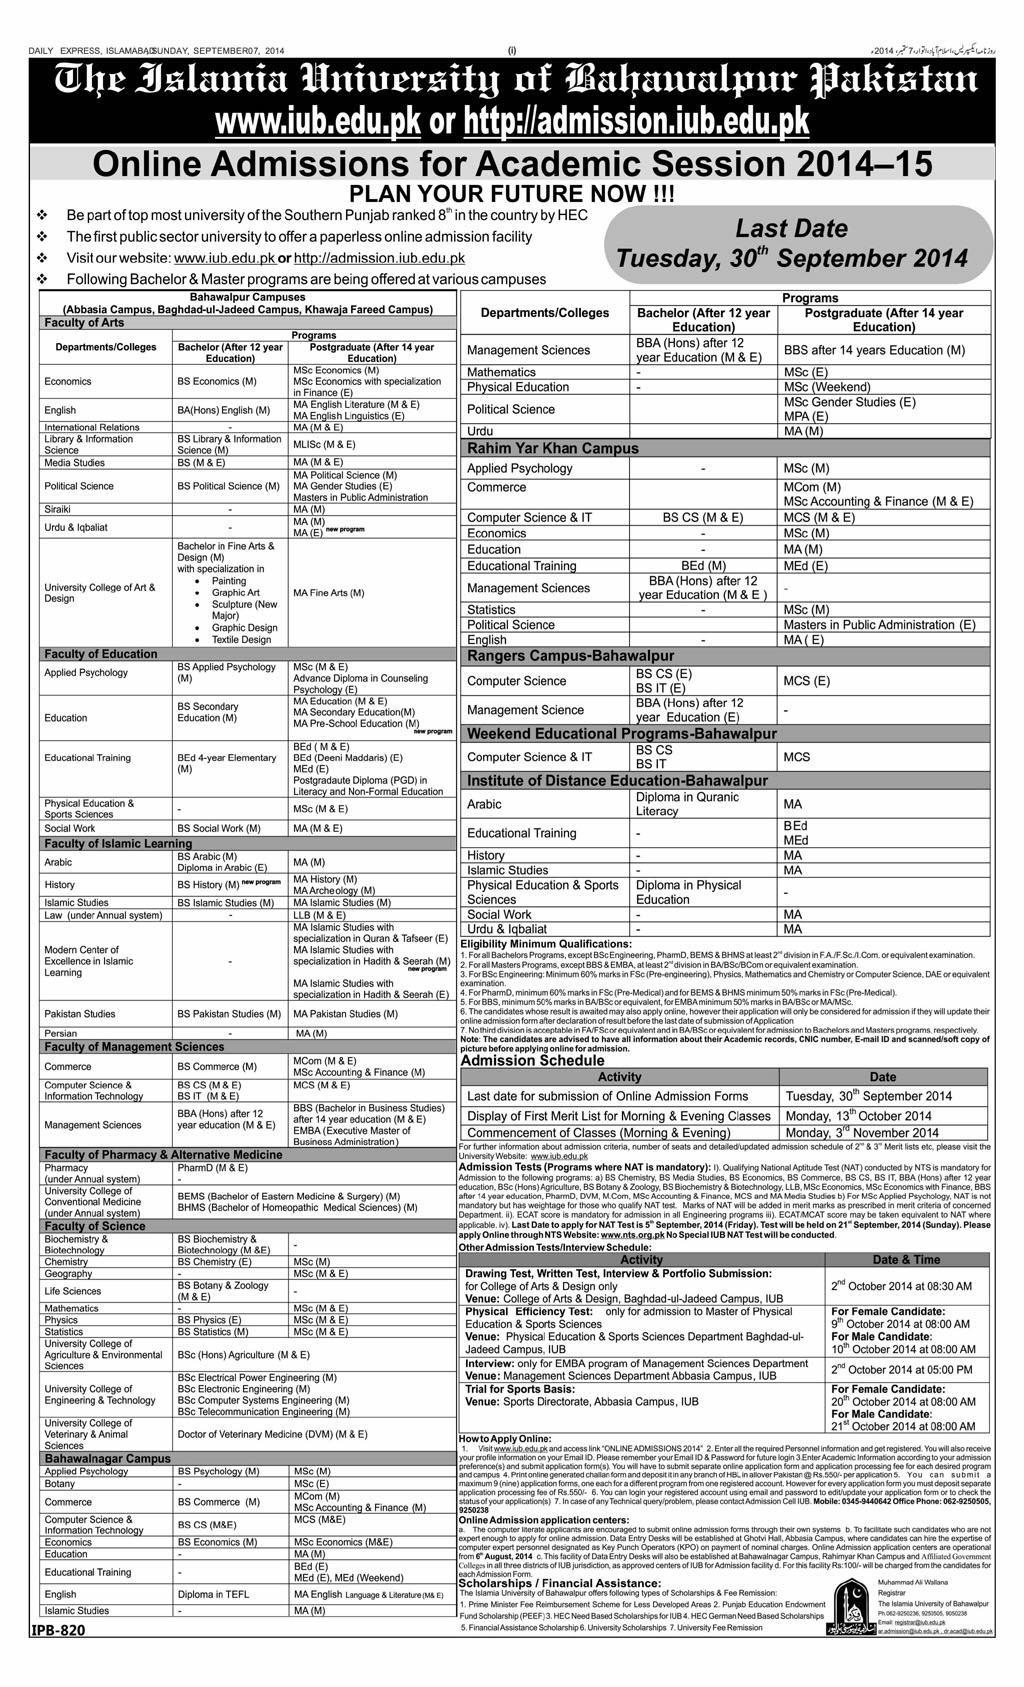 Islamia University of Bahawalpur (IUB) Bahawalpur Admission Notice 2014 for Doctor of Pharmacy (Pharm-D), Bachelor of Eastern Medicine & Surgery (BEMS), Bachelor of Homeopathic Medical Sciences (BHMS)